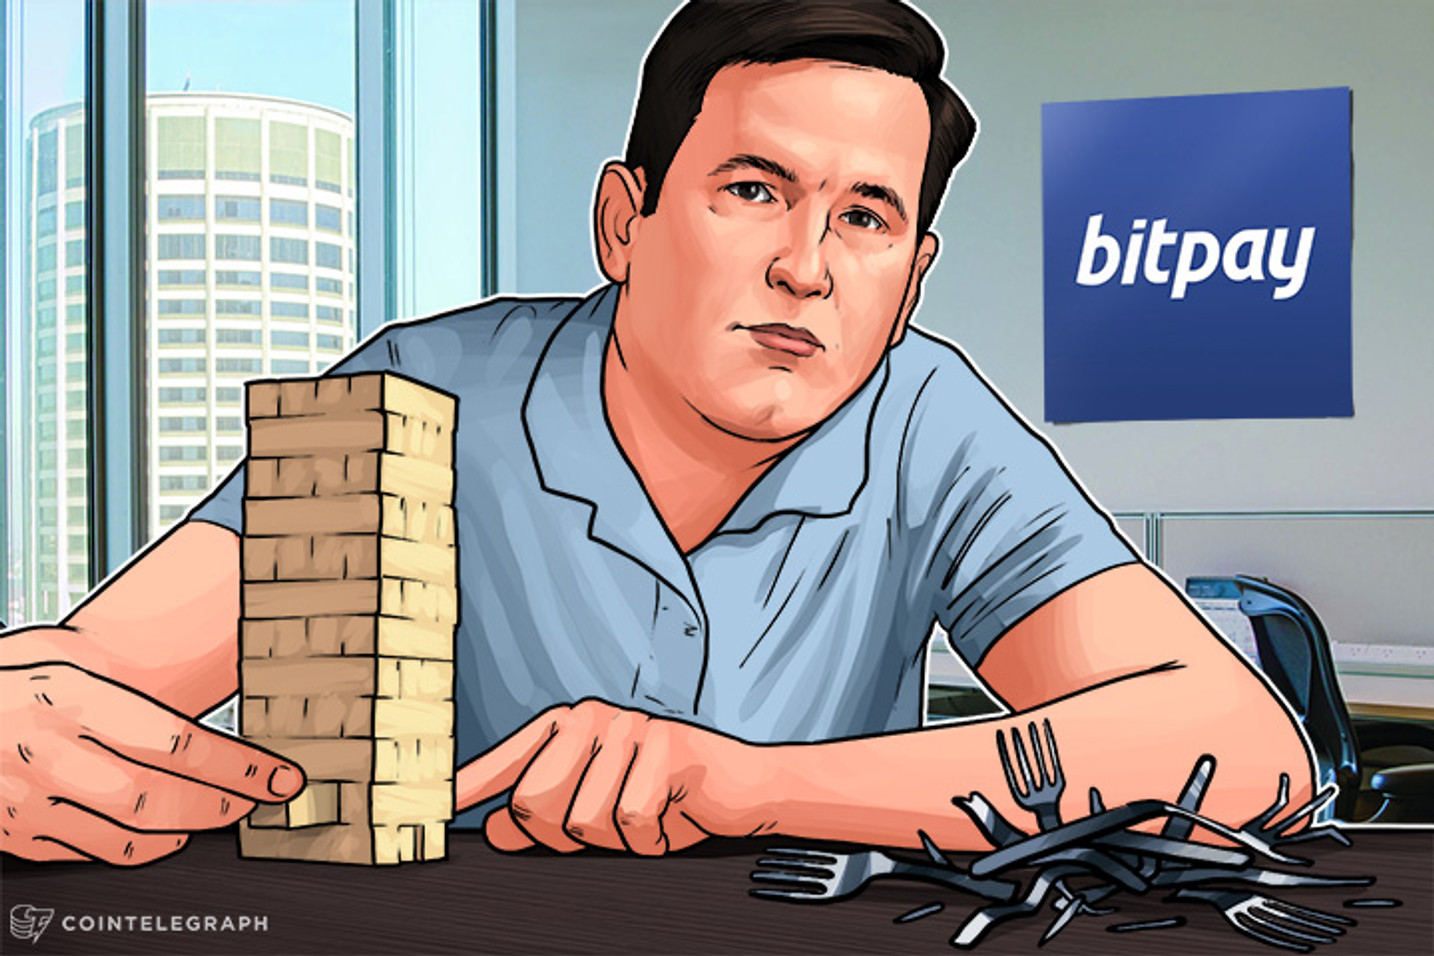 """In Bitcoin Litecoin Drama, BitPay Presses On With """"Secondary Blocks"""""""